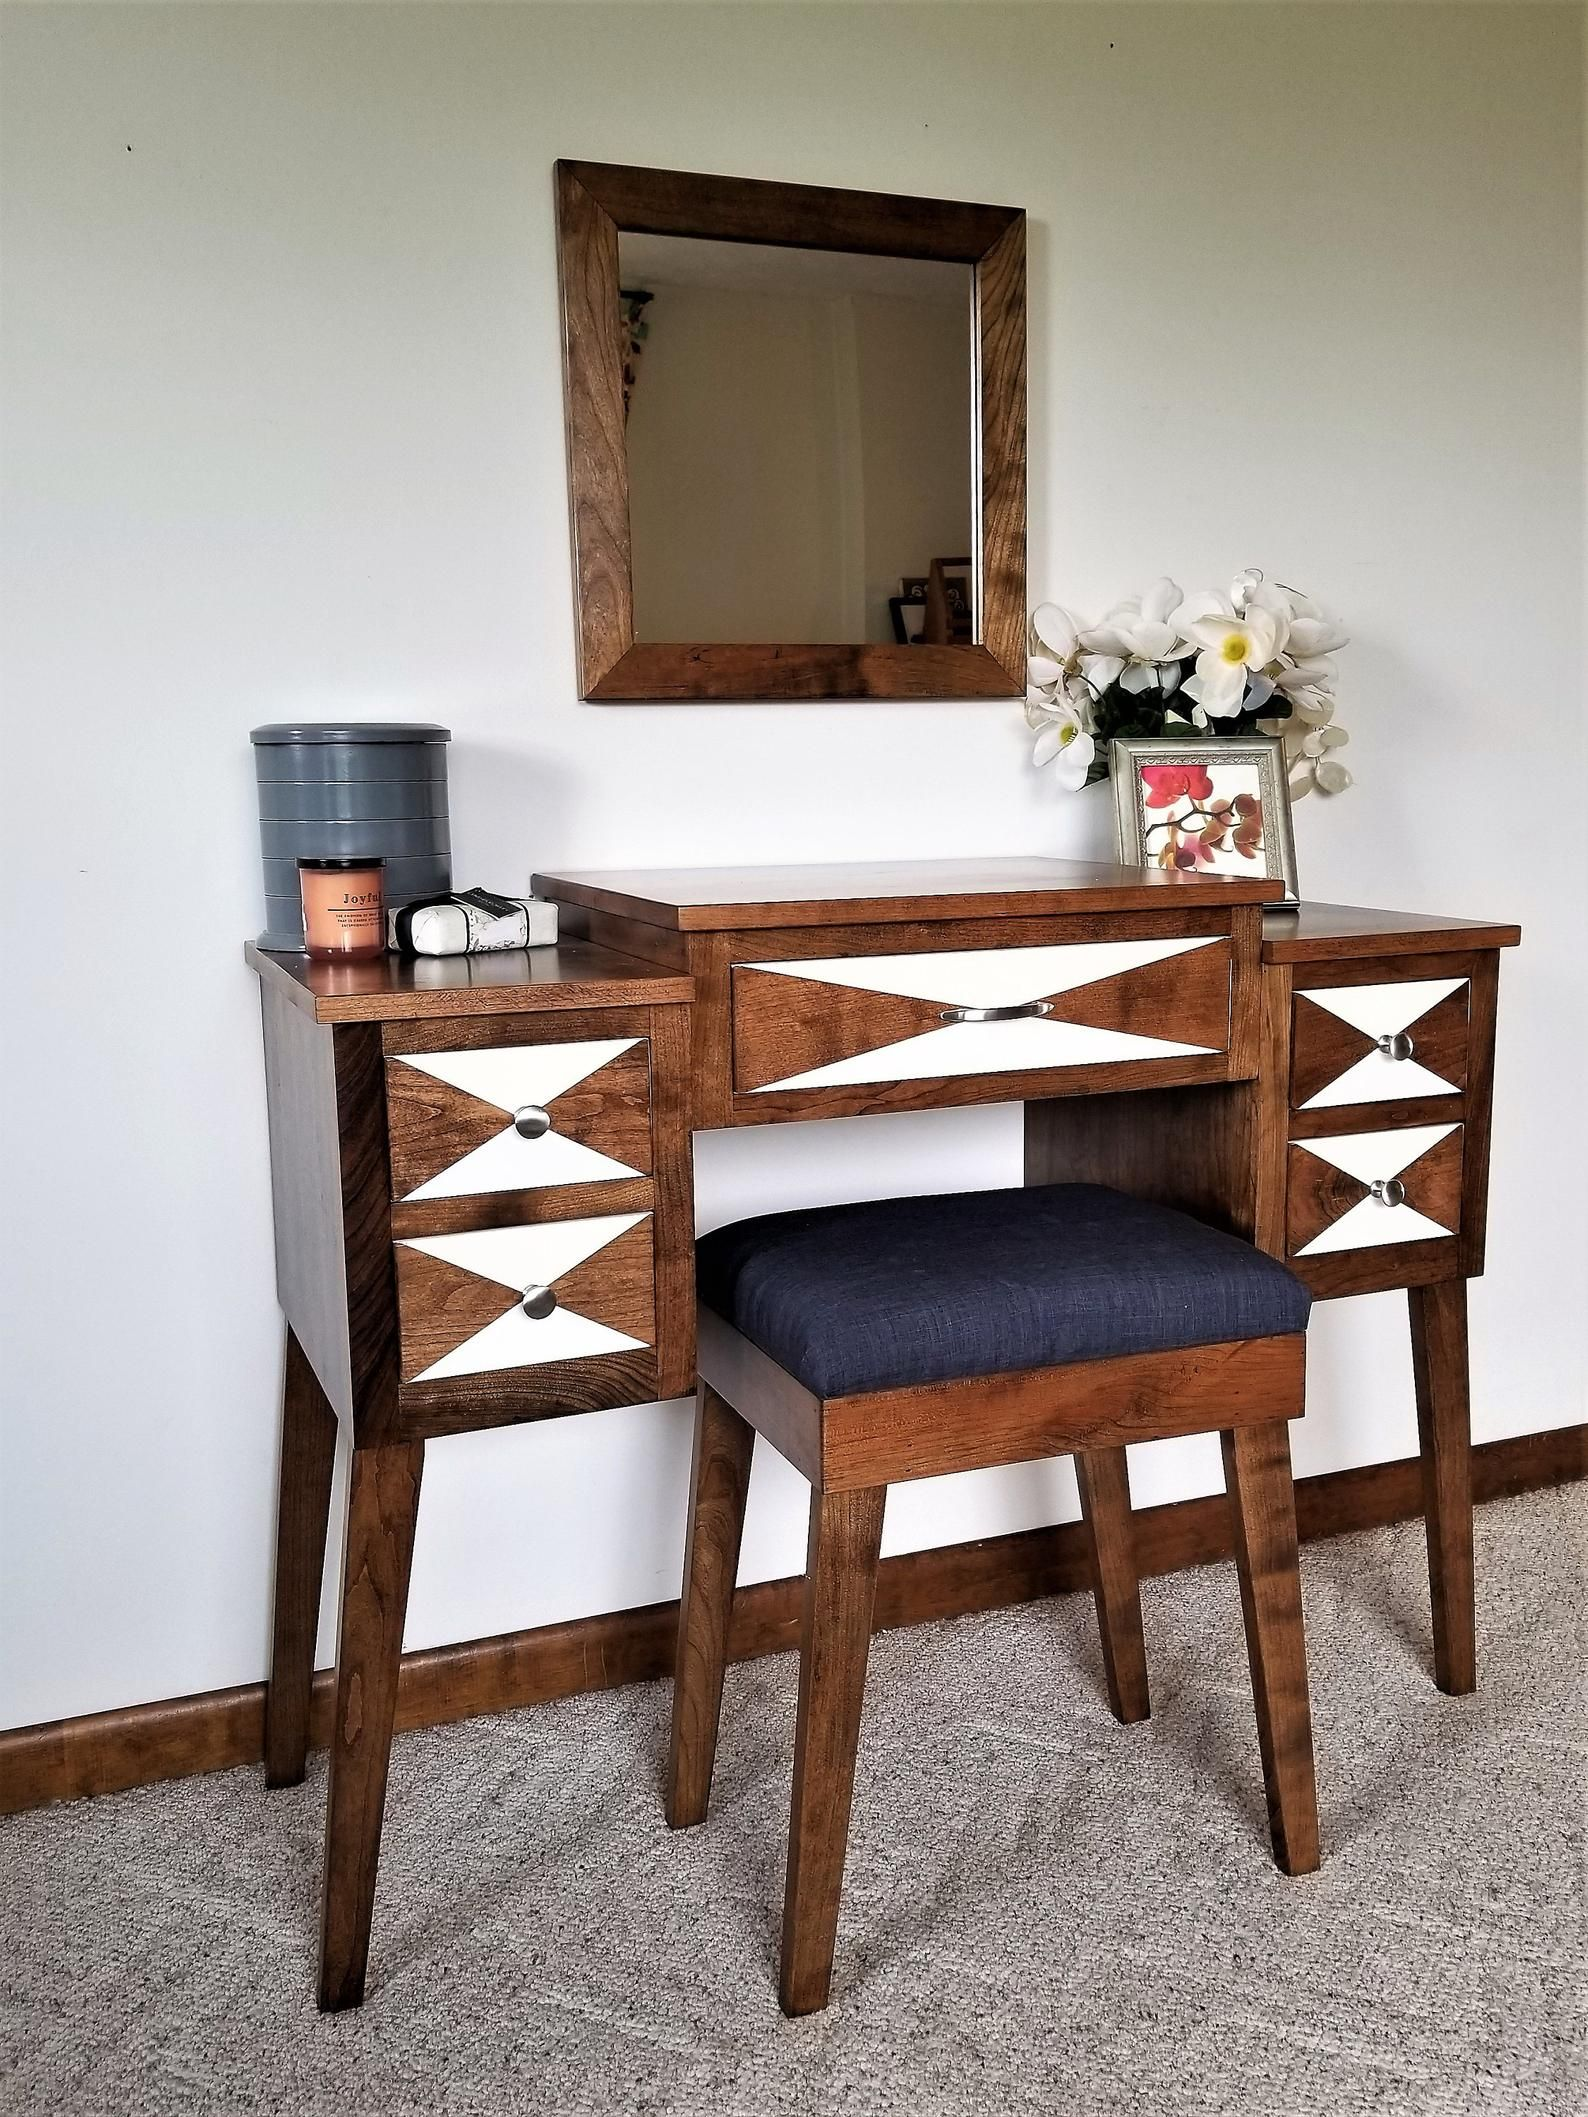 New Tiered Mid Century Modern Makeup And Vanity Table Etsy